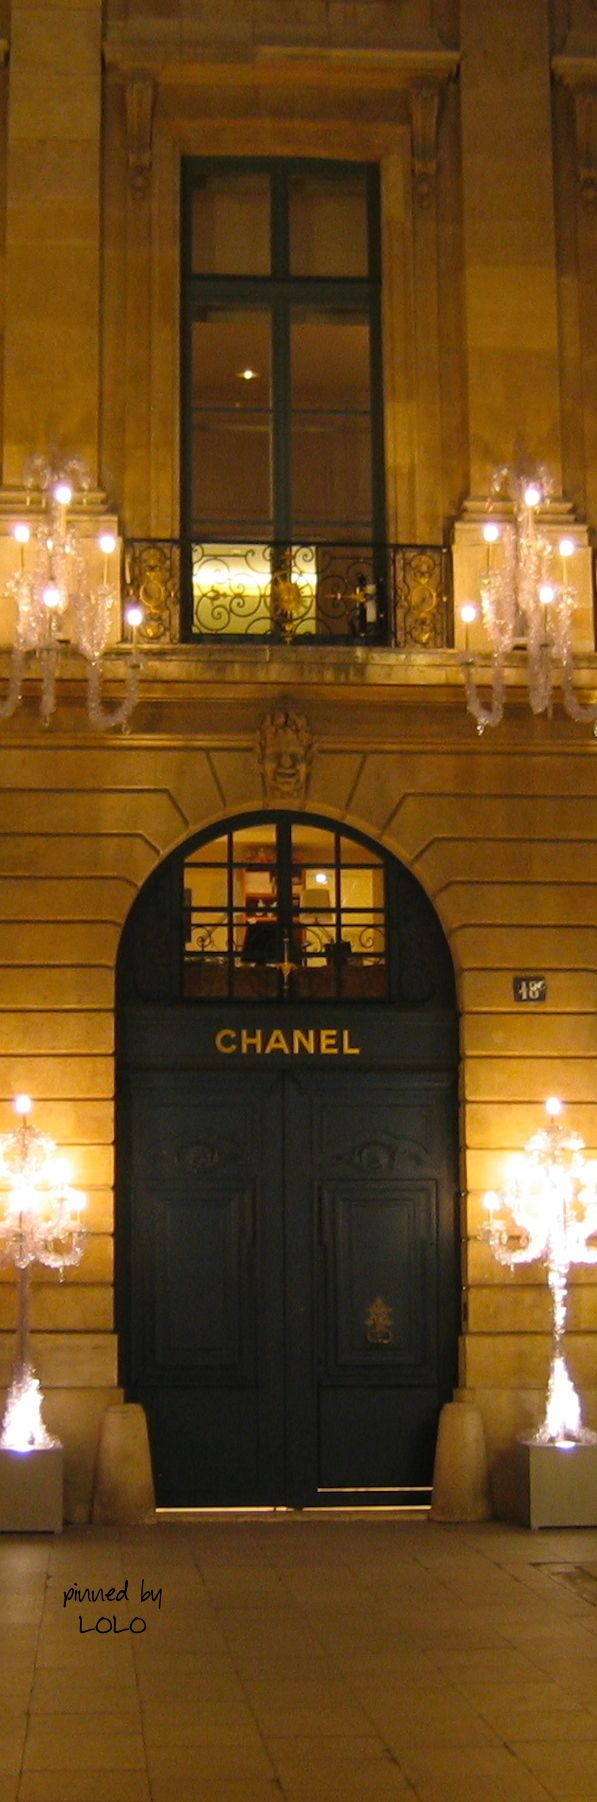 Shopping Chanel...Paris. I want to live here...sigh